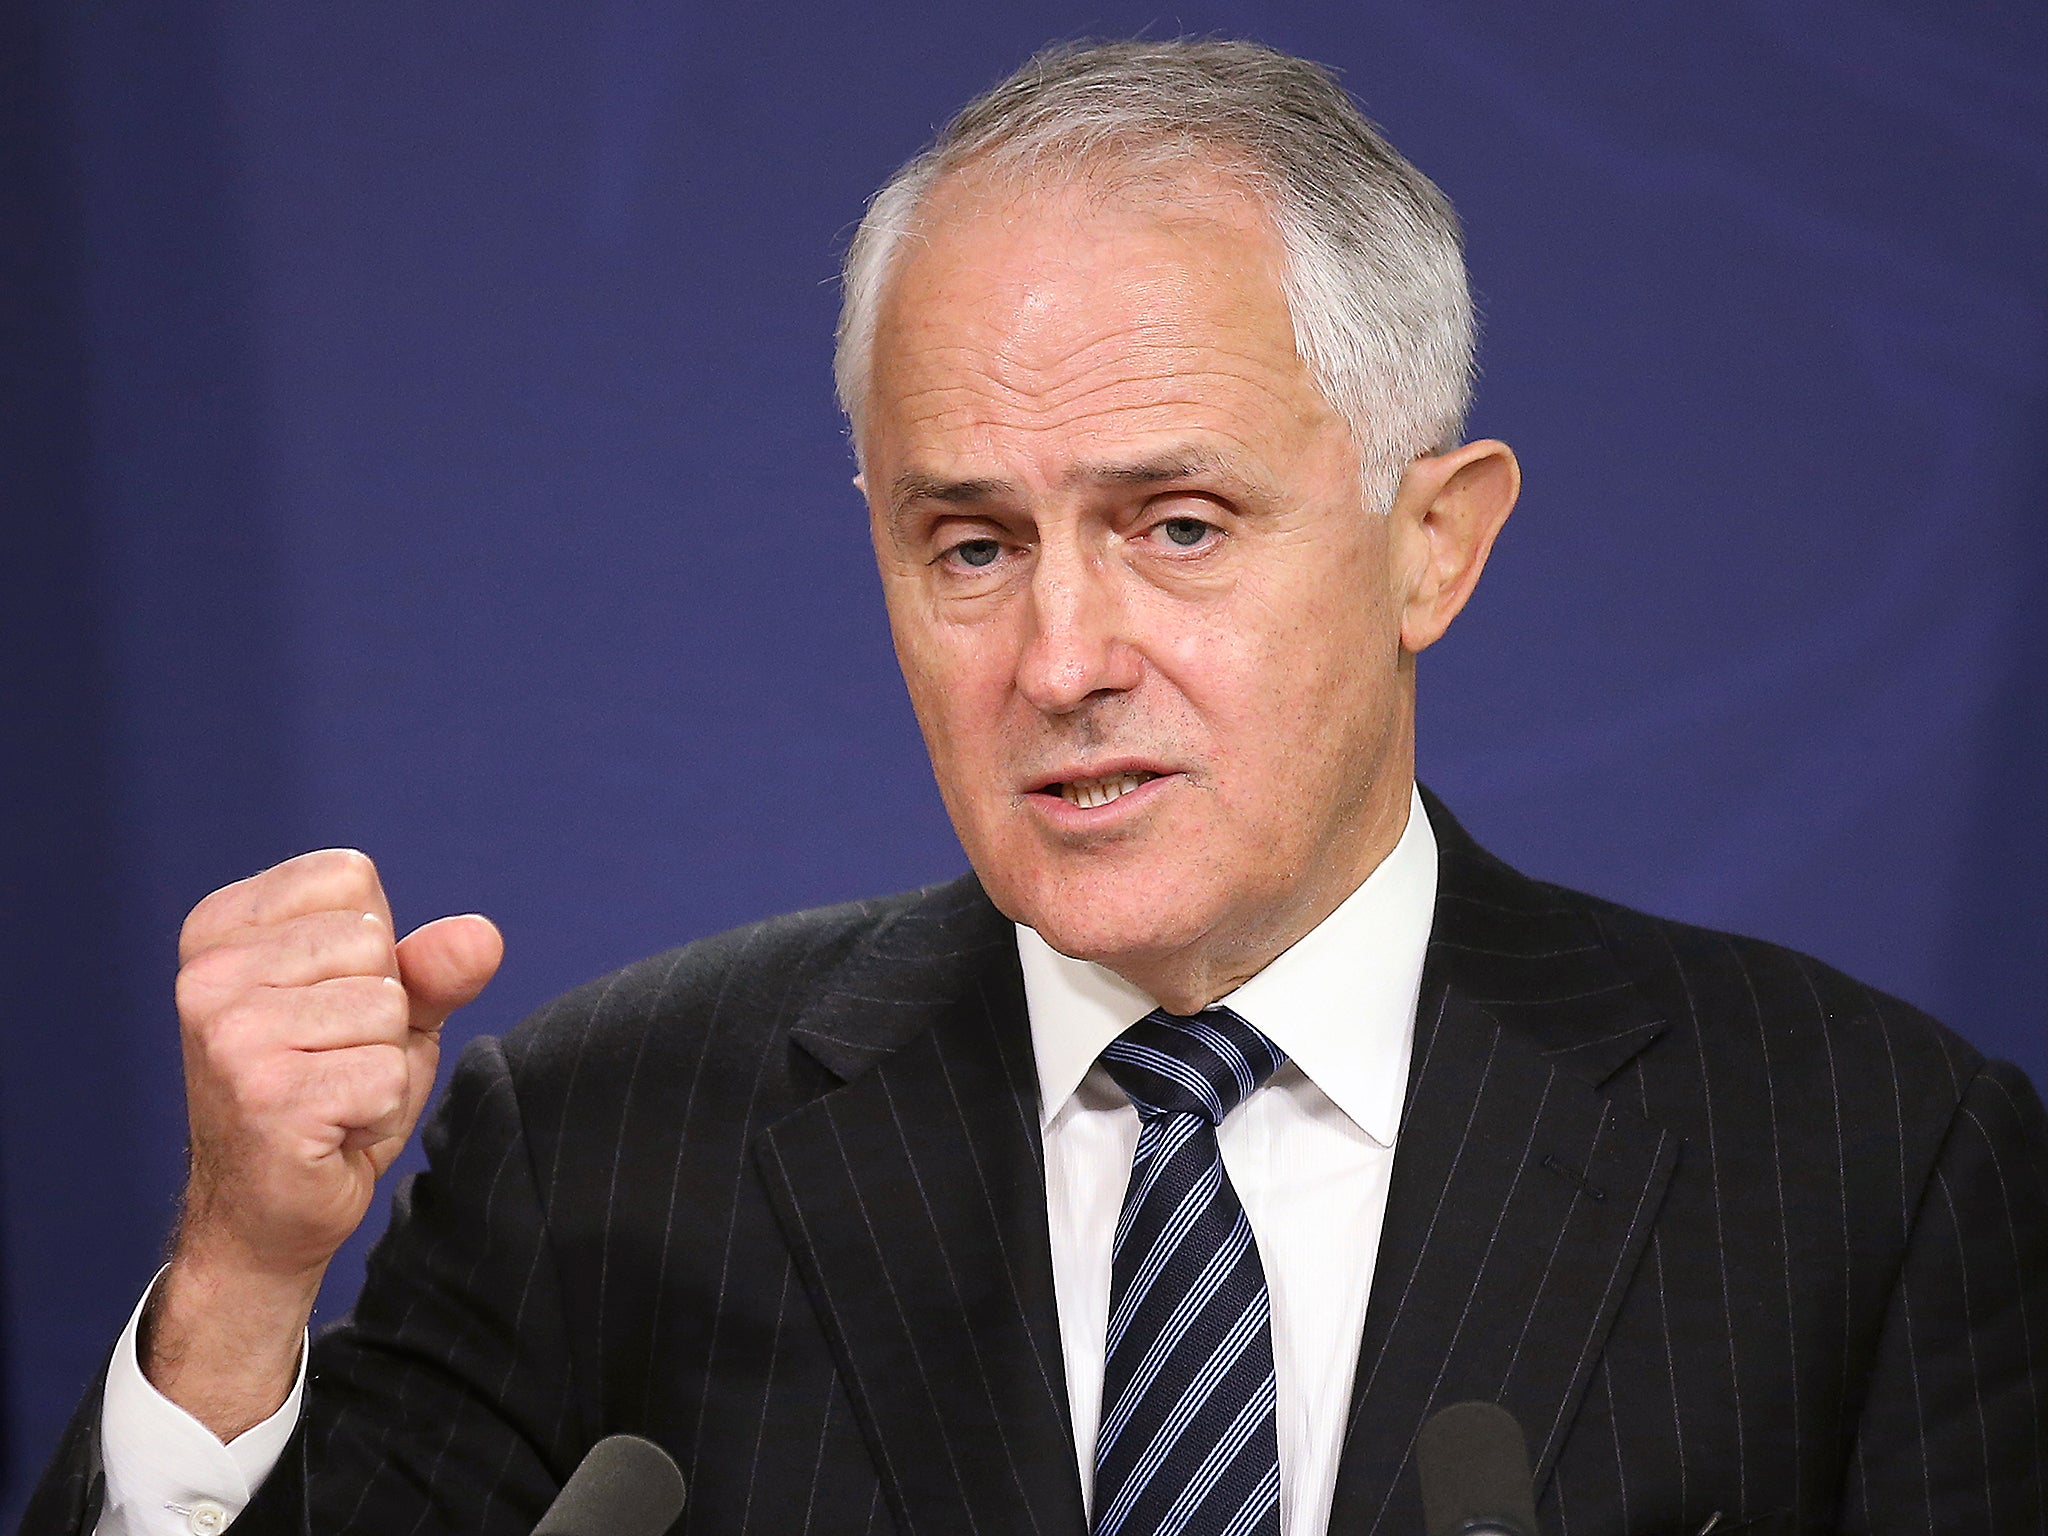 https://www.independent.co.uk/news/malcolm-turnbull-prime-minister-laws-of-mathematics-do-not-apply-australia-encryption-l-a7842946.html